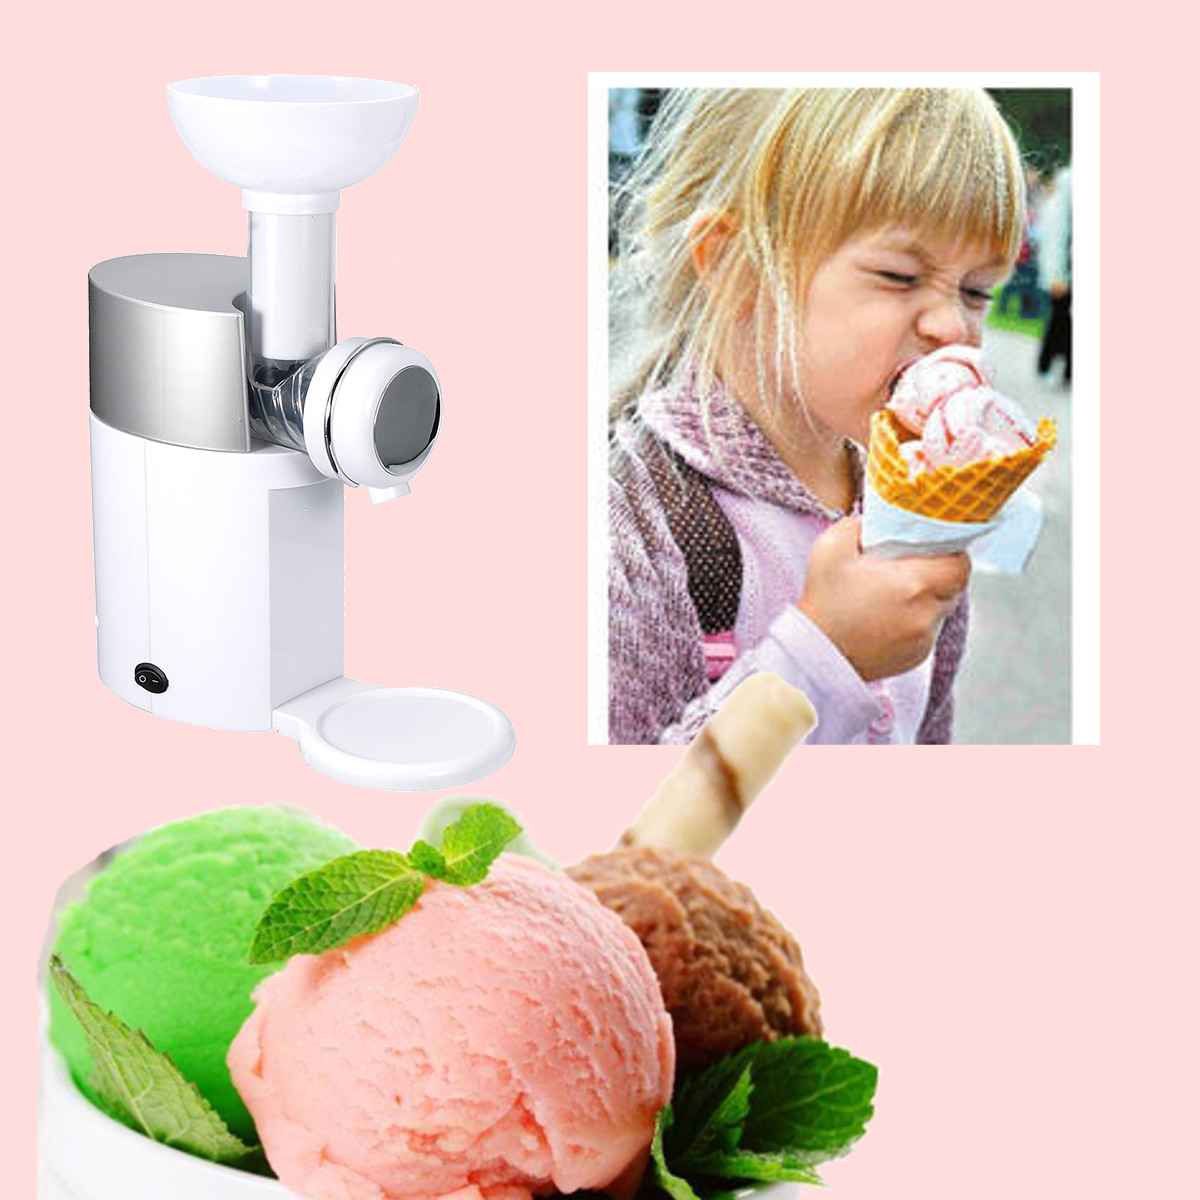 220V Red/White 500ml Fruit Ice Cream Maker Machine Automatic Frozen Dessert Maker Device